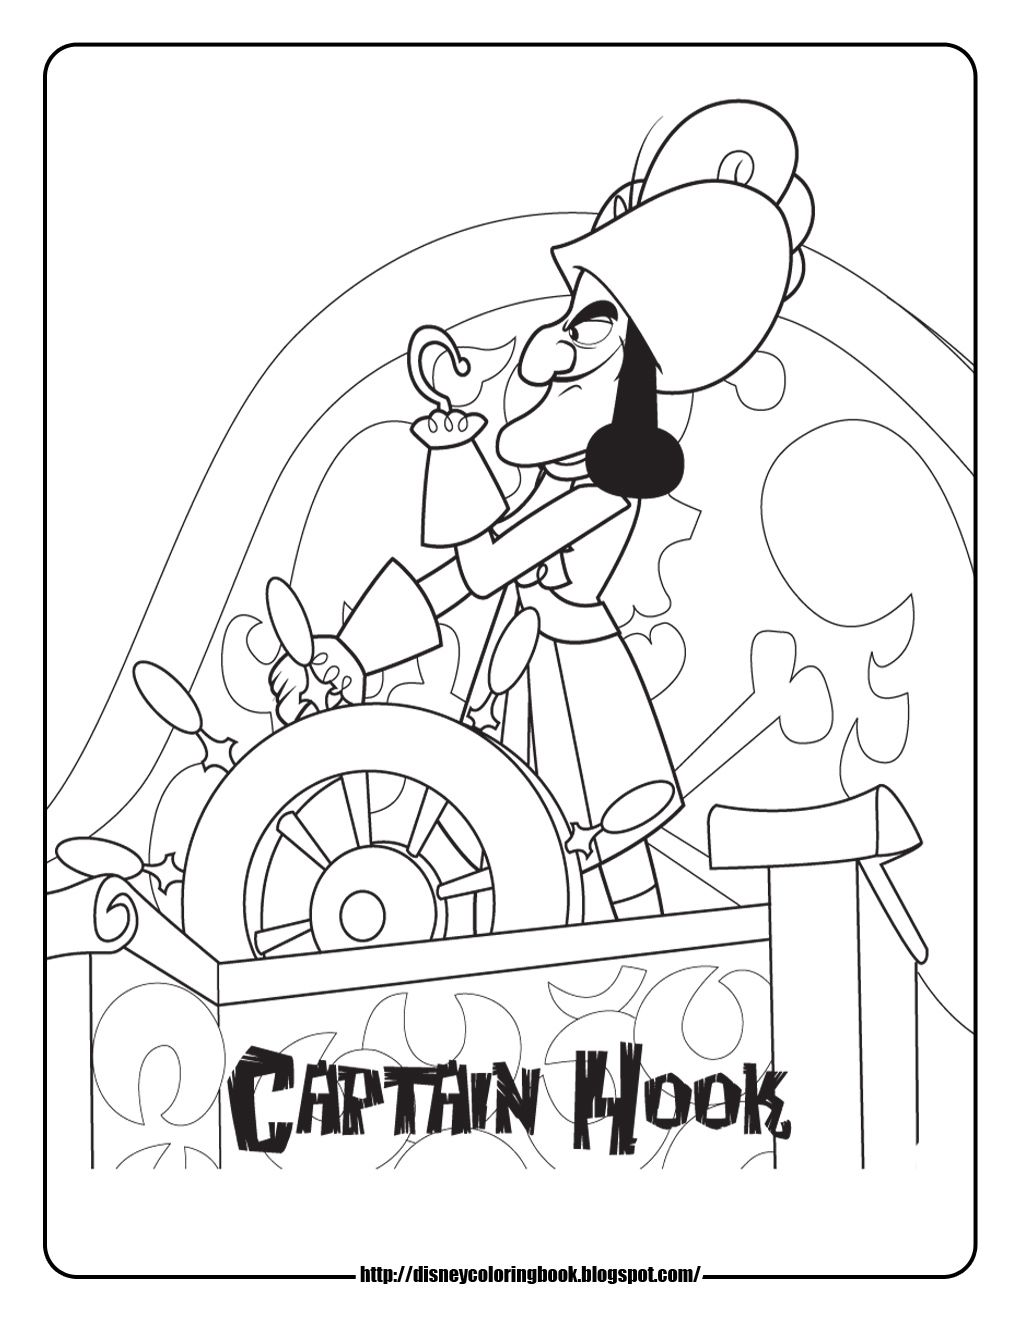 Free coloring pages disney junior - Disney Coloring Pages And Sheets For Kids Jake And The Neverland